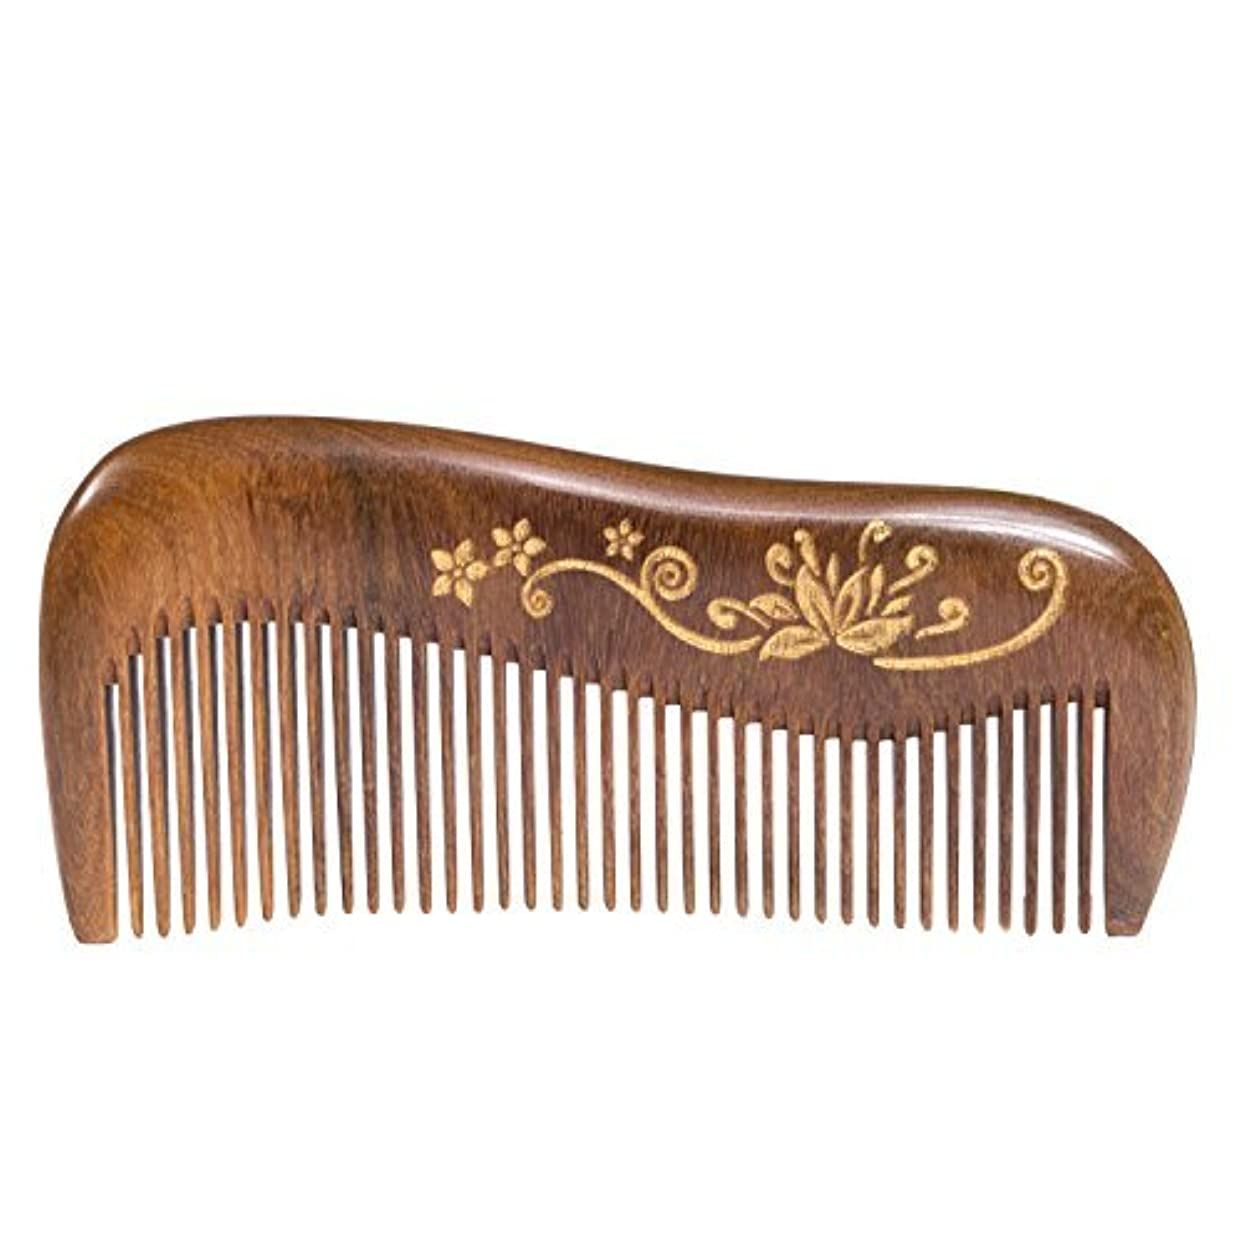 柔らかい足手術オッズBreezelike Wooden Hair Comb - Fine Tooth Wood Comb for Women - No Static Natural Detangling Sandalwood Comb [並行輸入品]